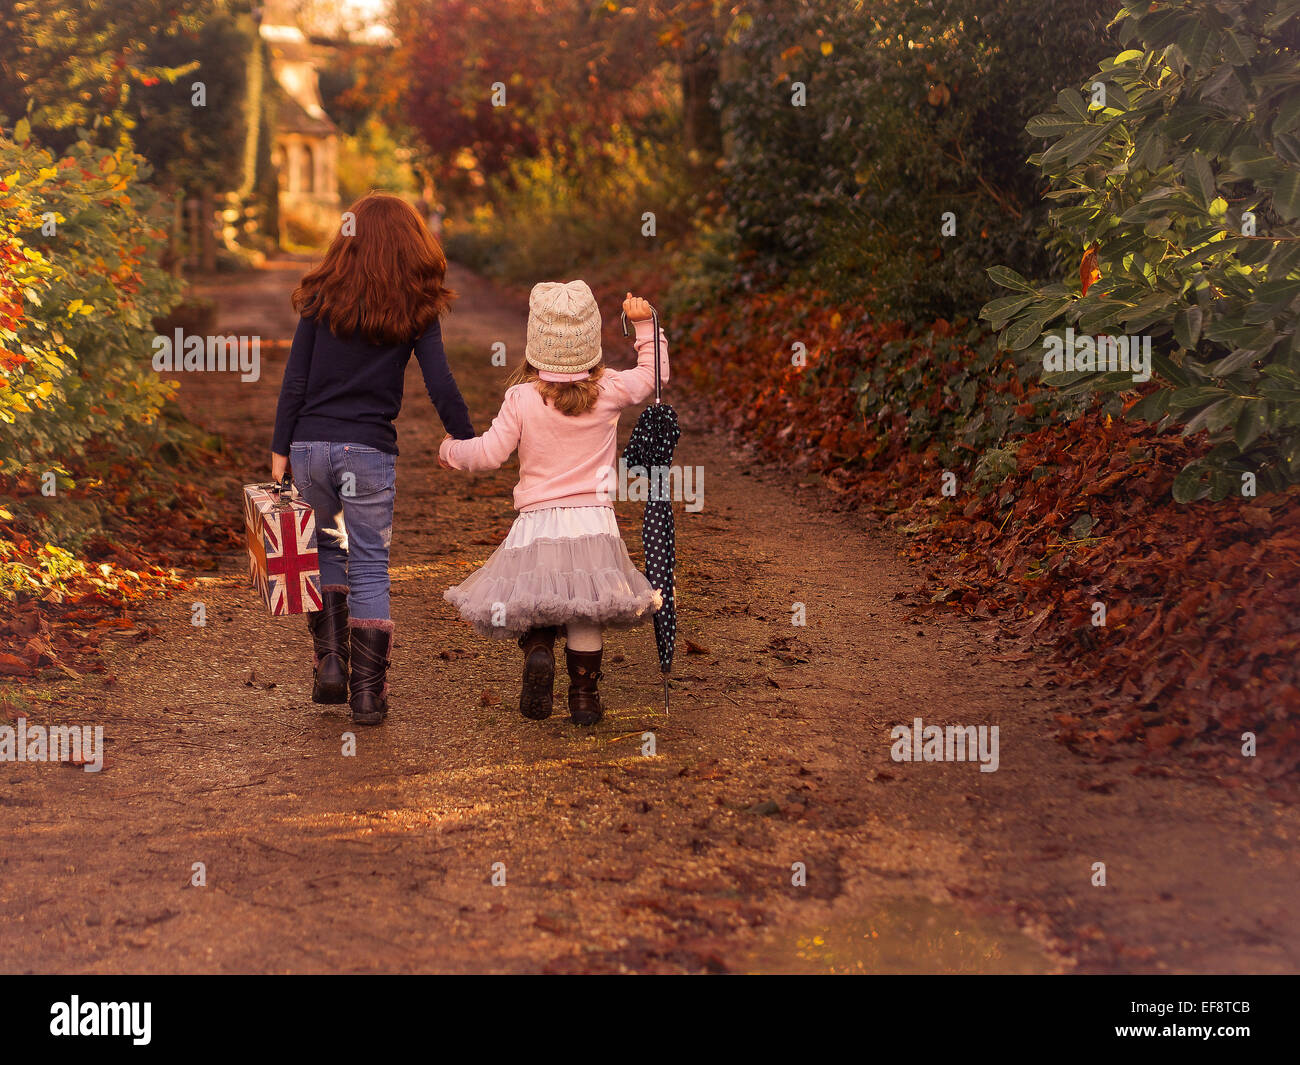 Two sisters walking country path holding union jack case and umbrella - Stock Image